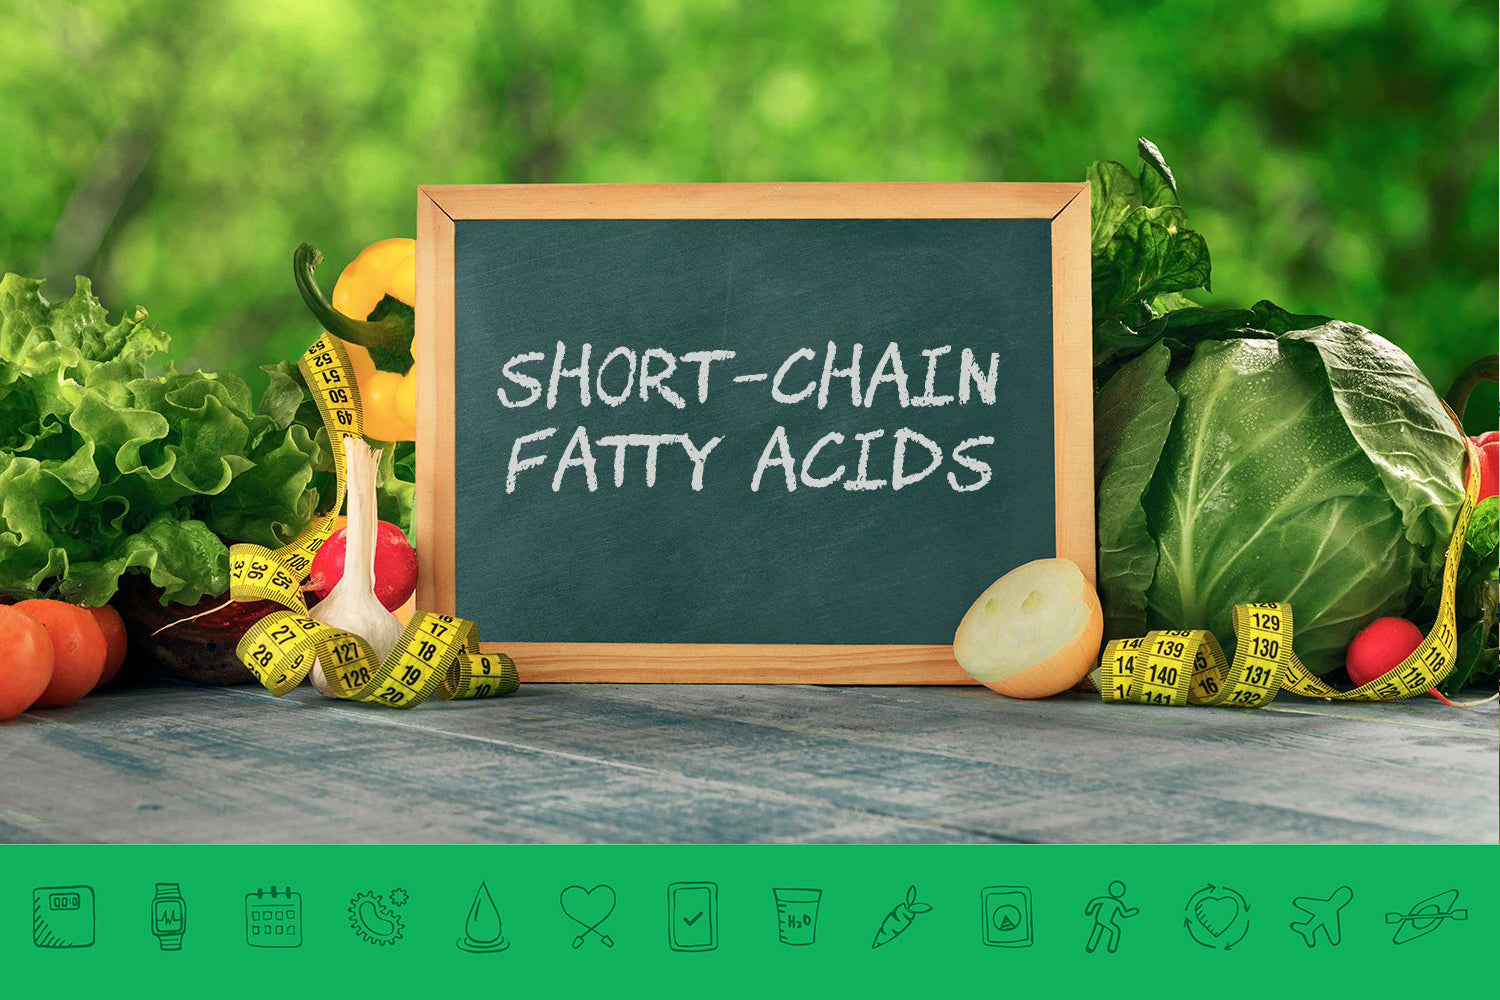 3 ways that Short Chain Fatty Acids can Improve your Health